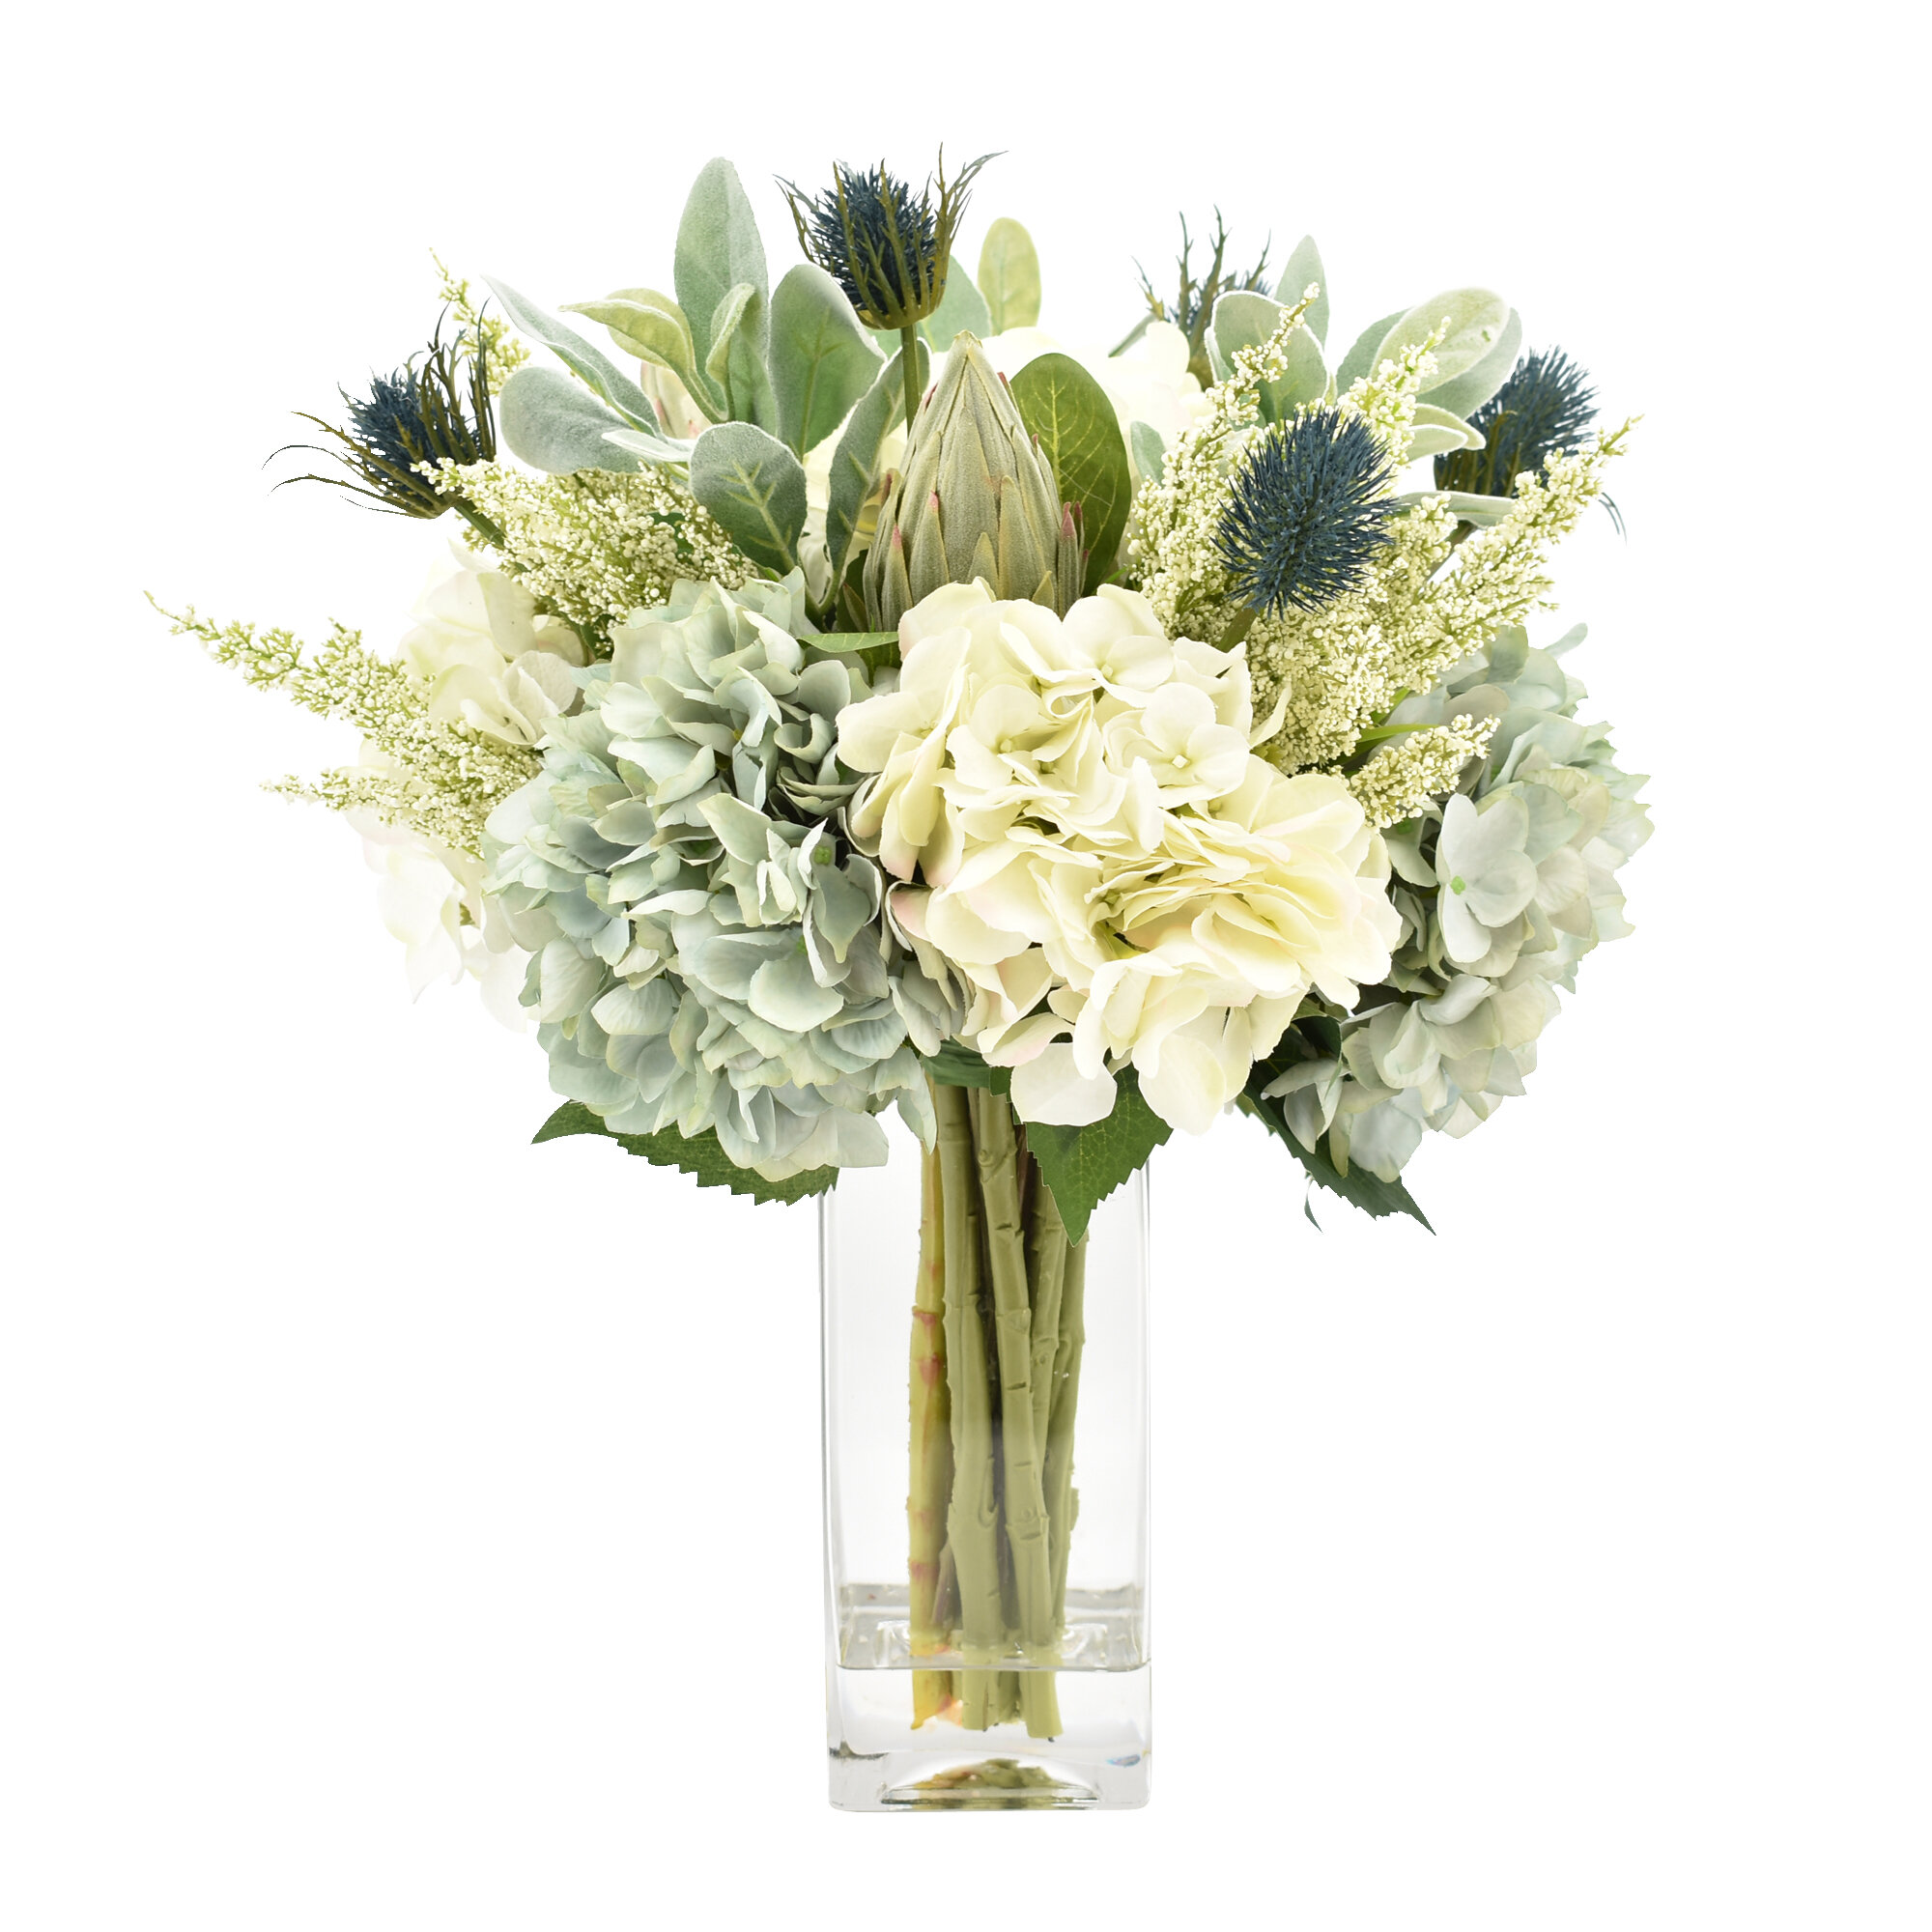 Creative Displays Inc Mixed Floral Arrangement In Vase Reviews Perigold